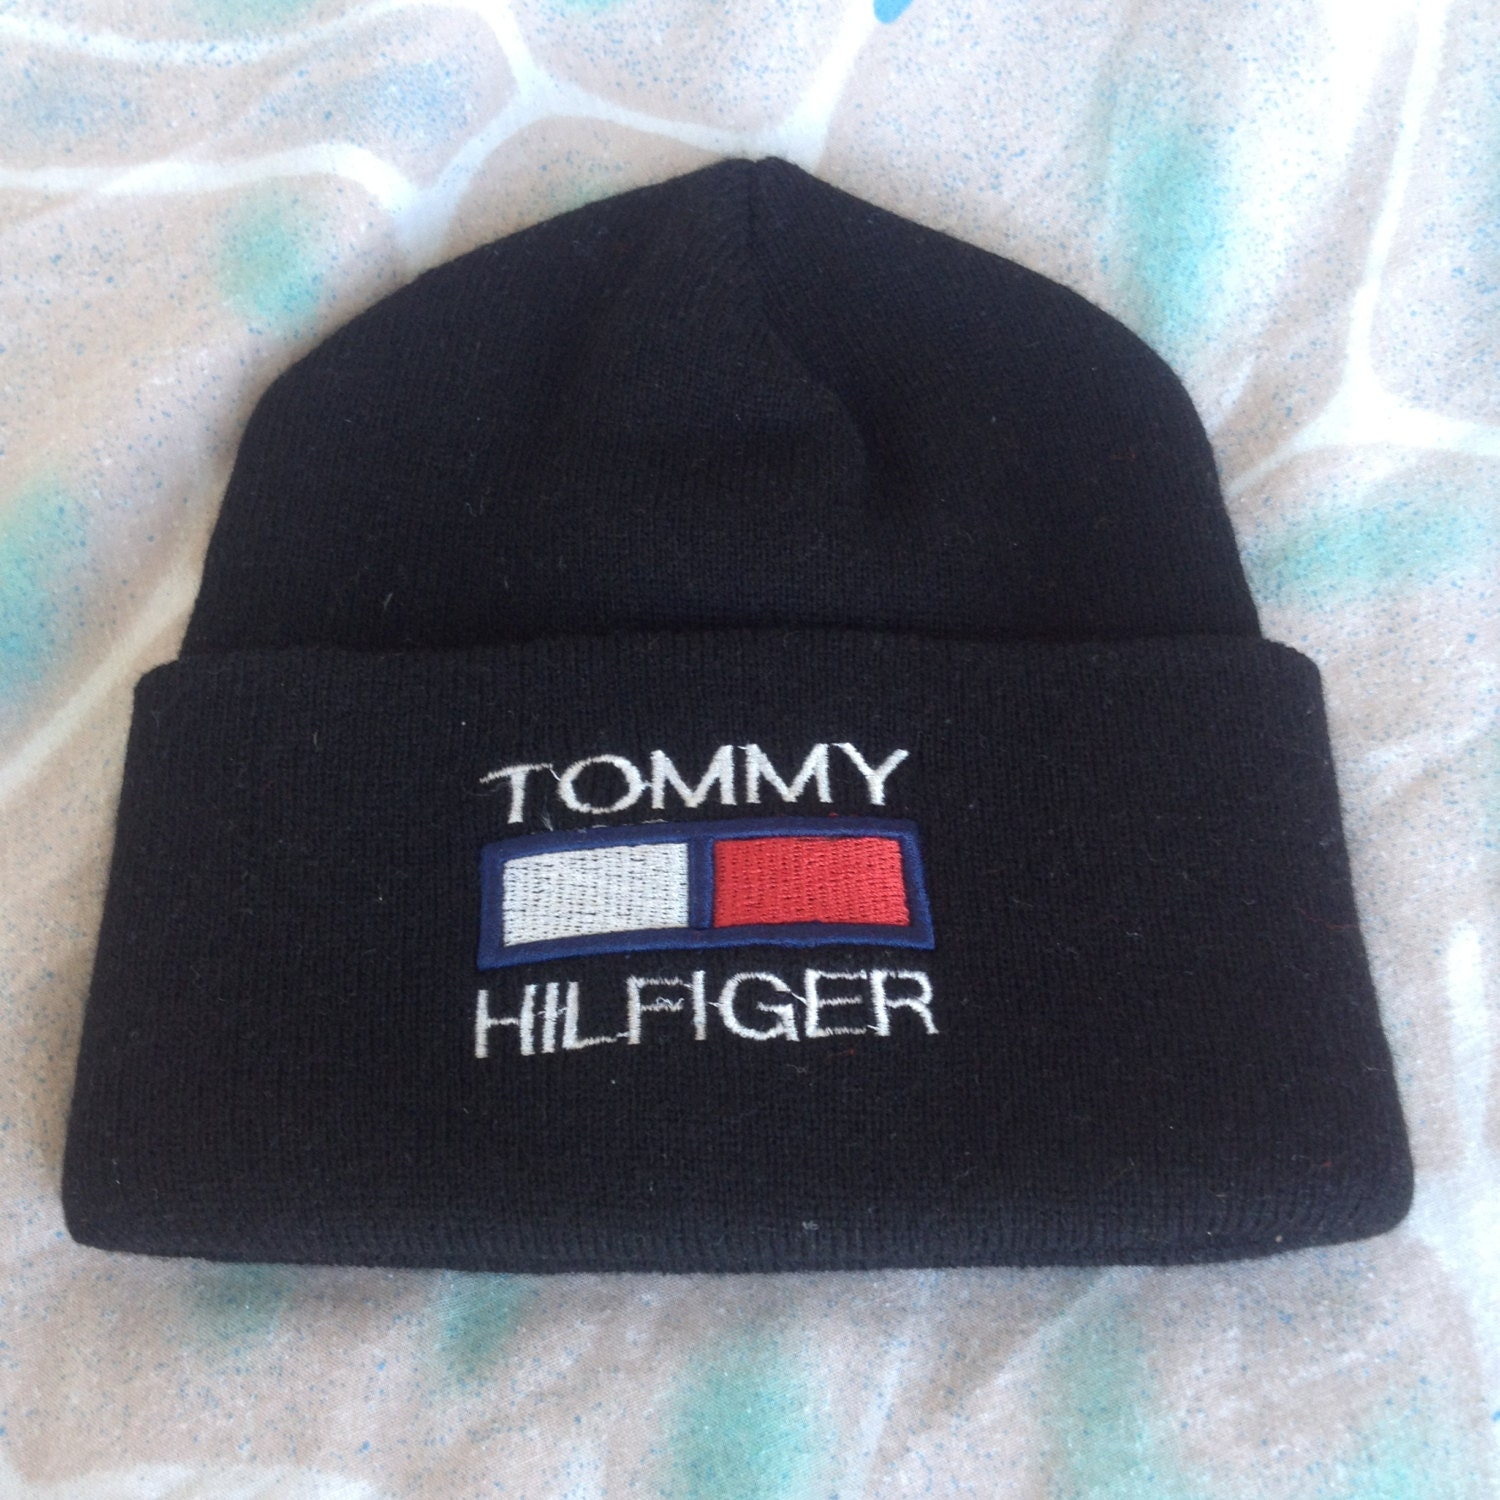 90s tommy hilfiger beanie toque vintage winter hat. Black Bedroom Furniture Sets. Home Design Ideas